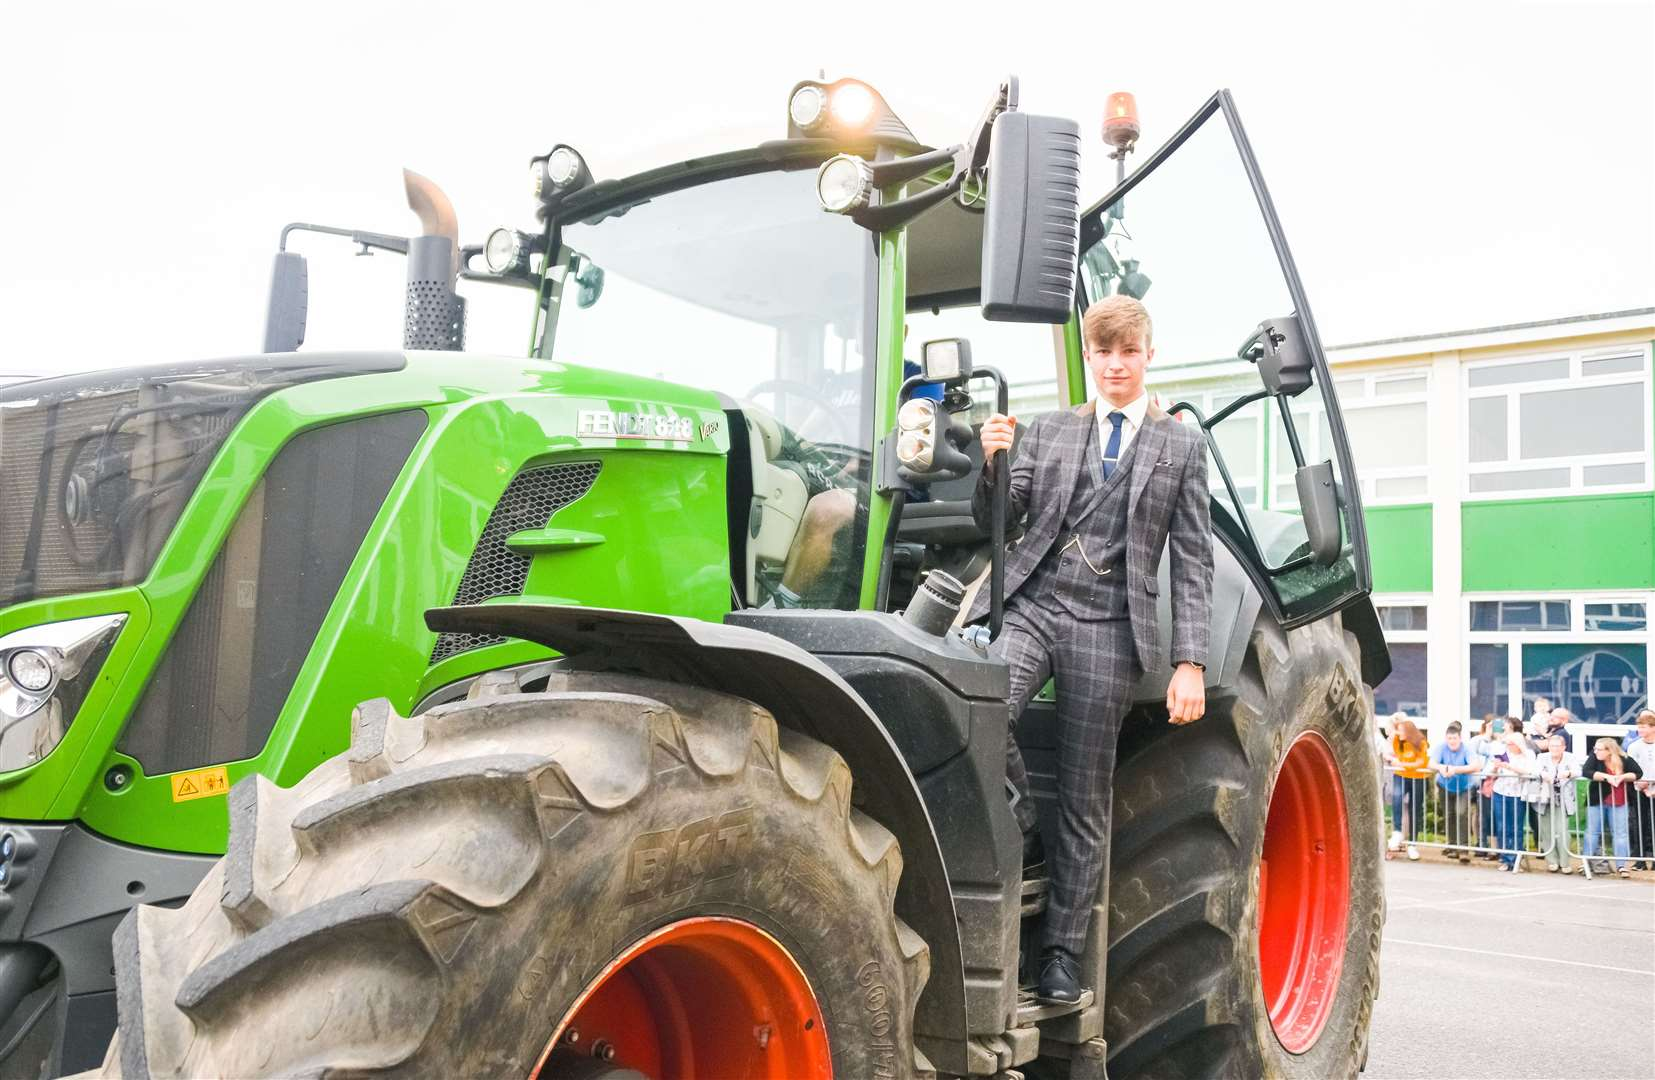 A tractor was among the transport options on show (50585451)